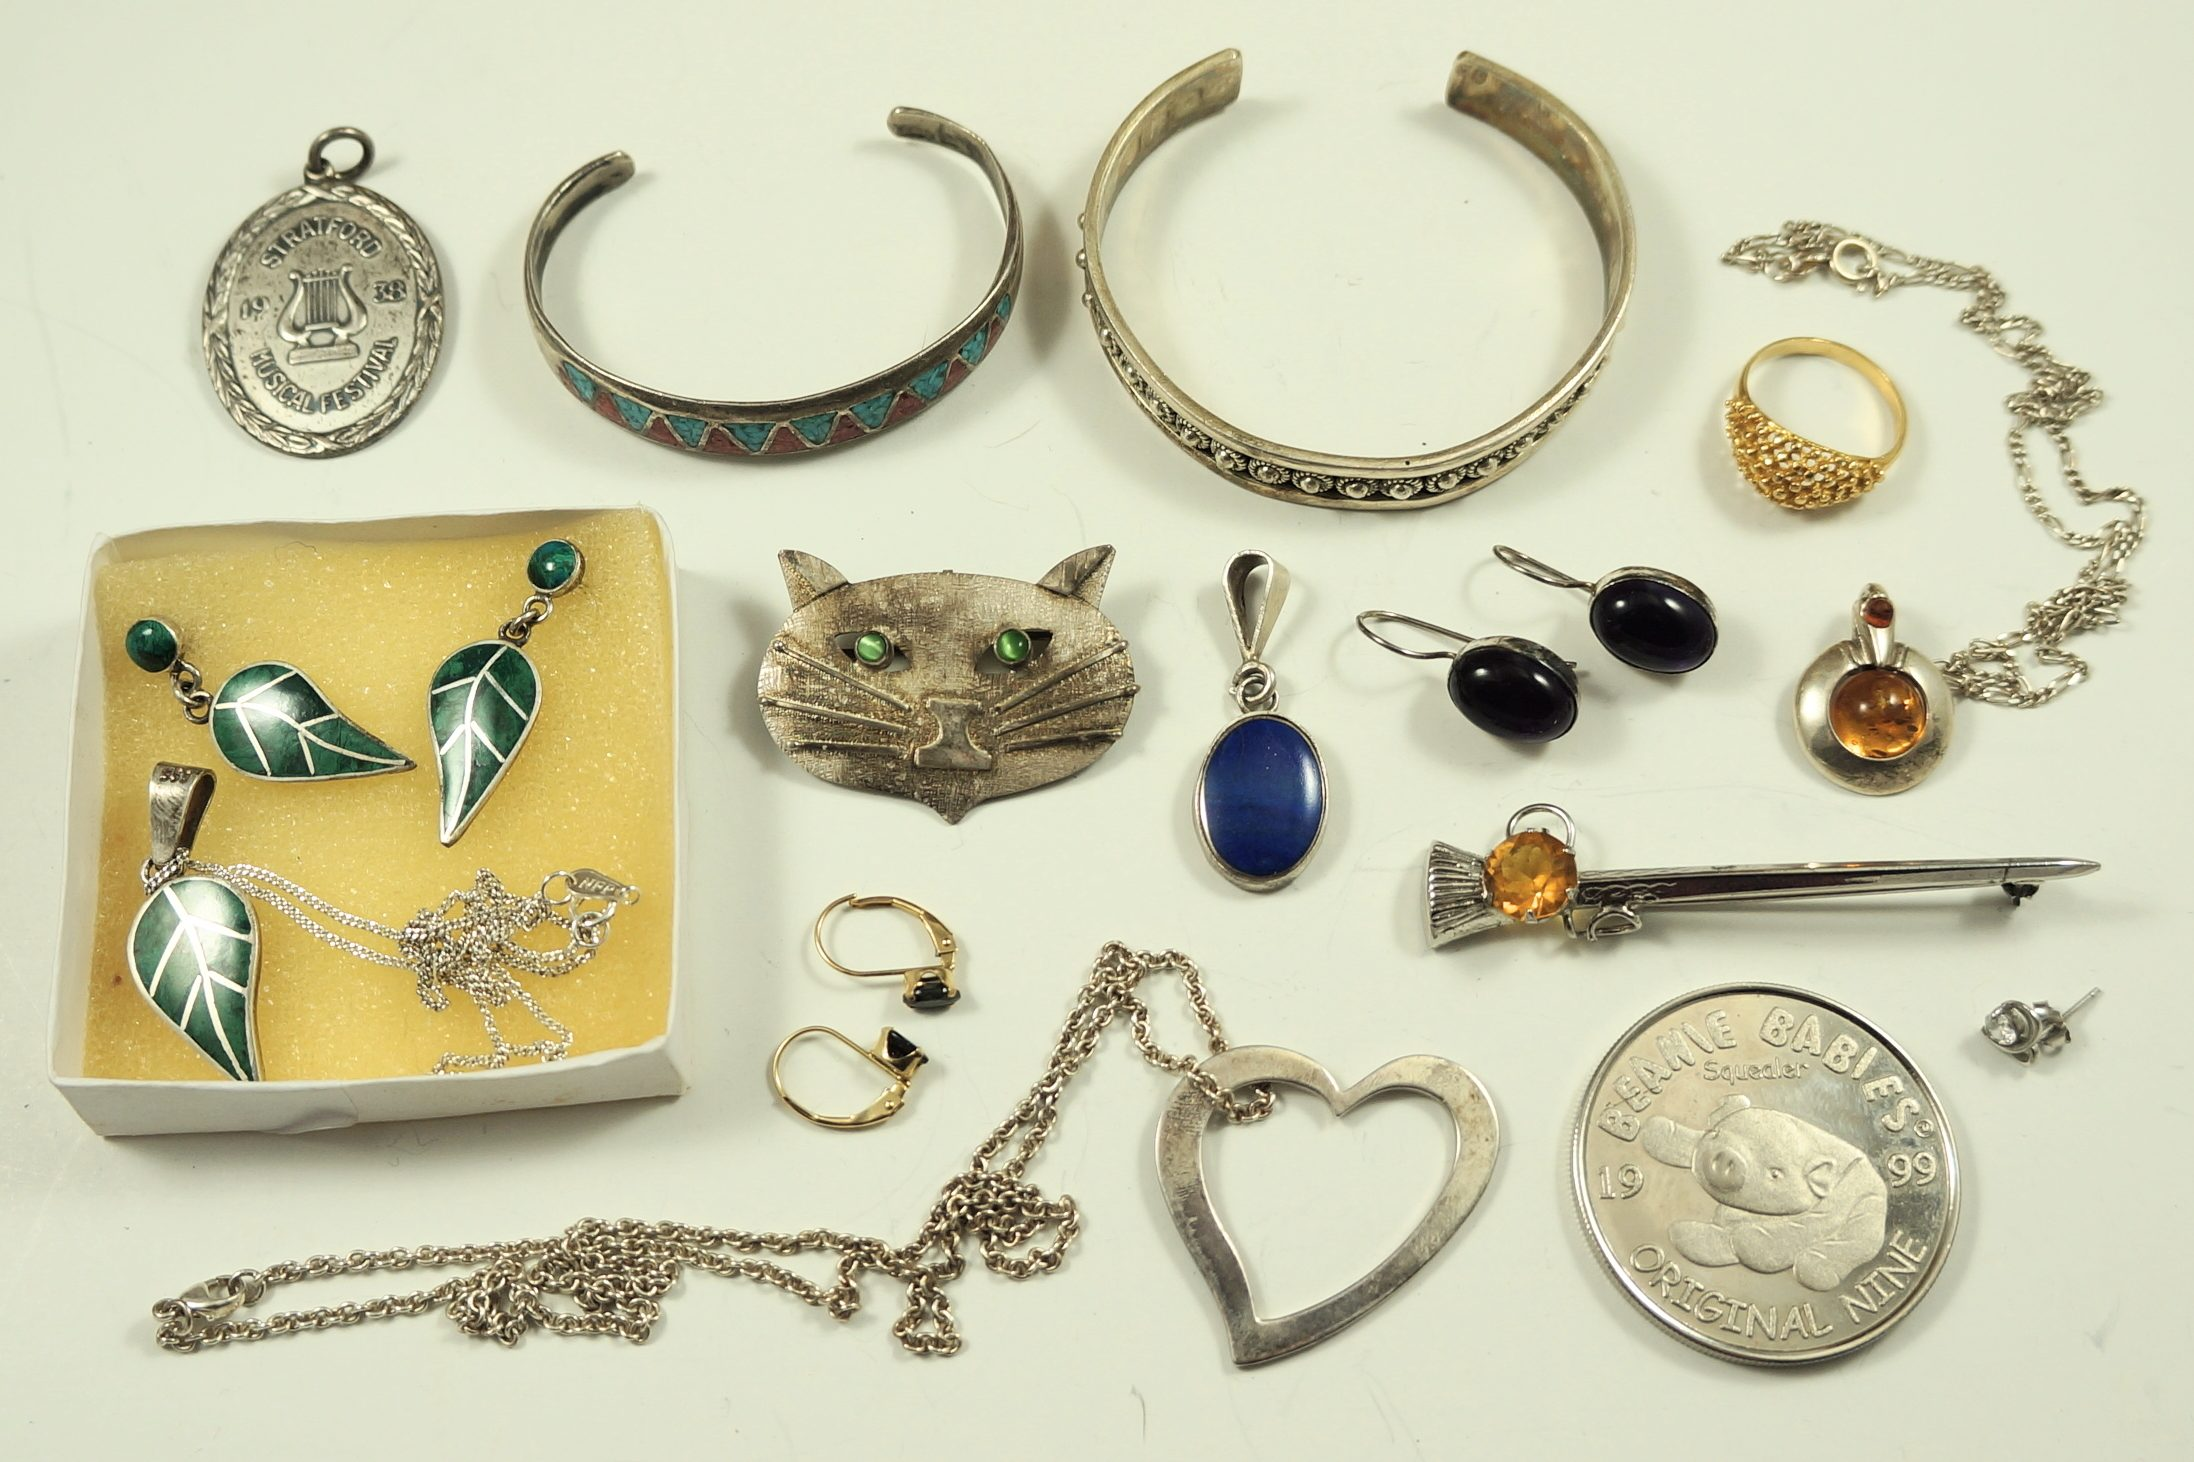 Random jewelry – Things I find in the garbage